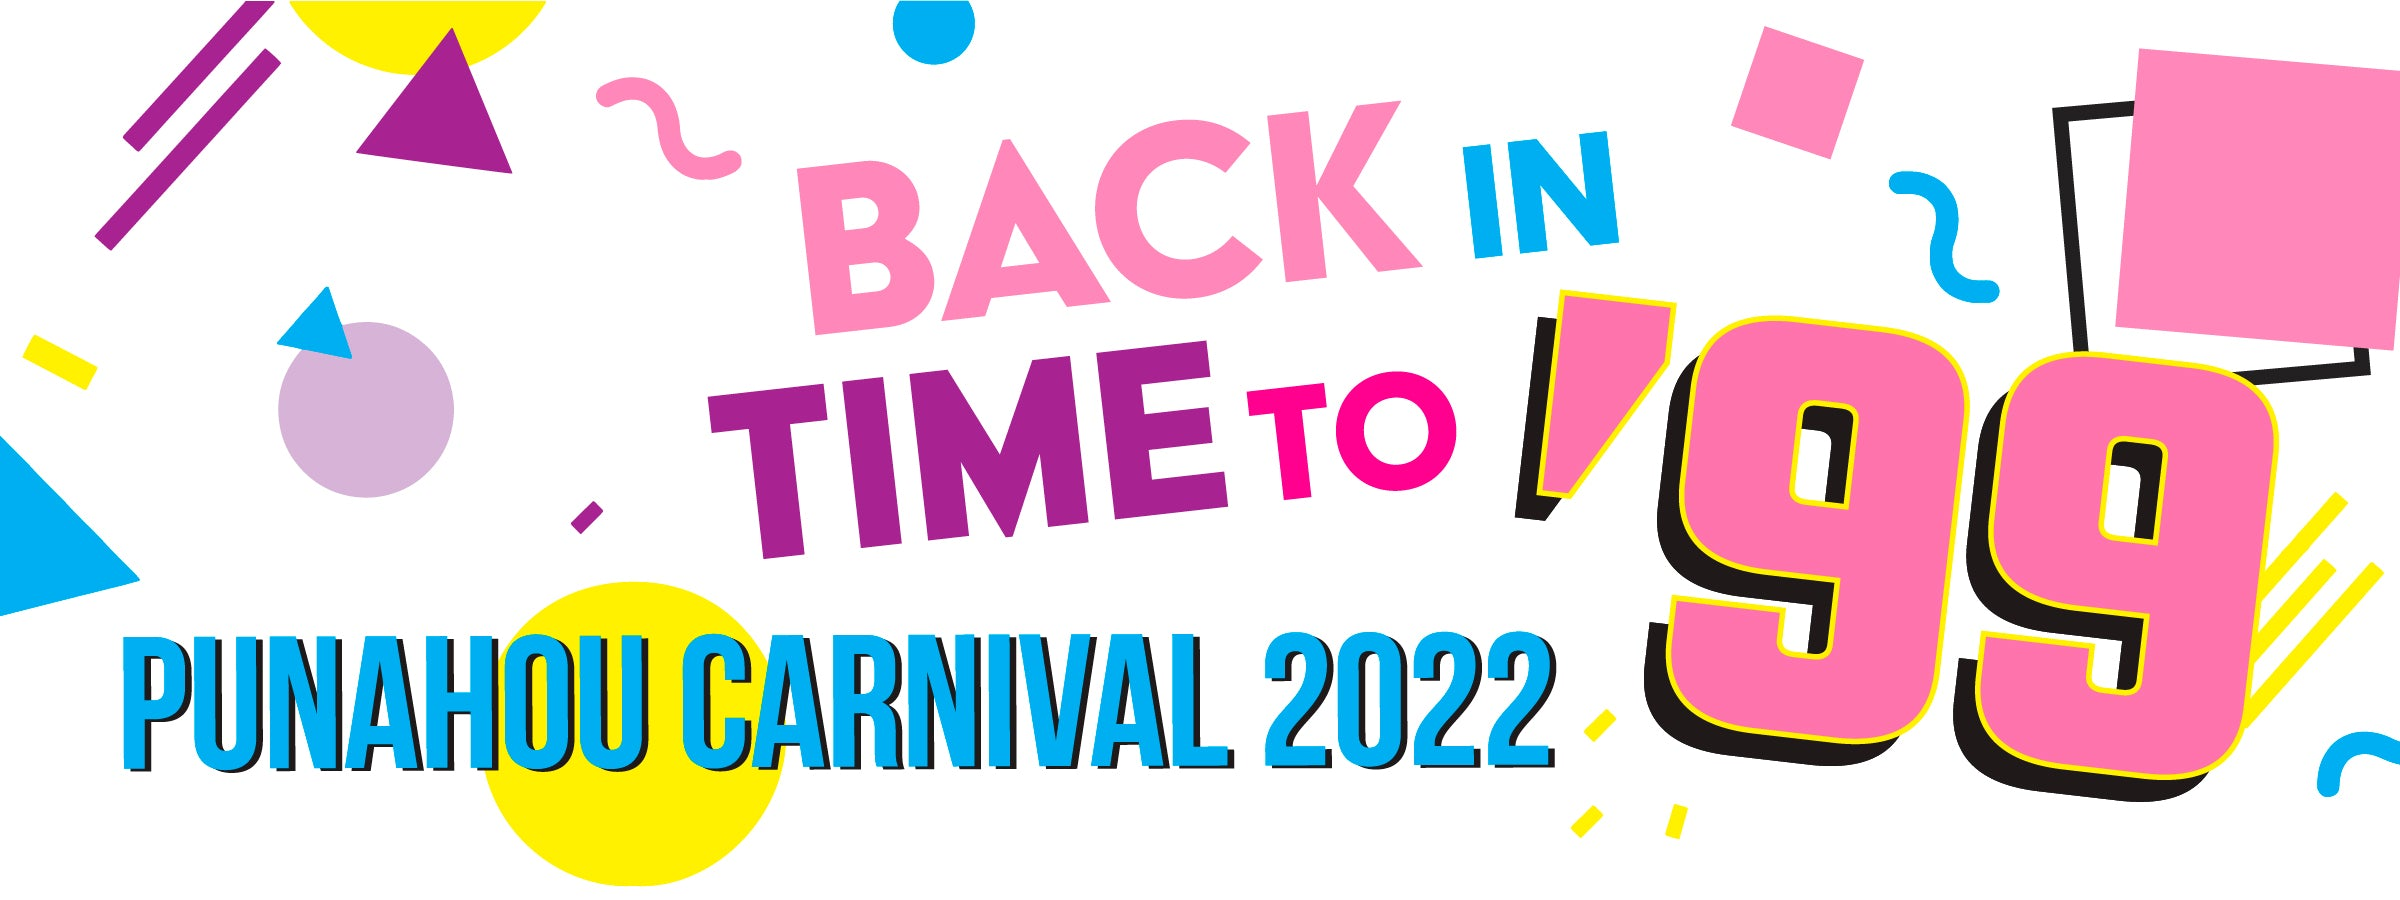 Welcome to Punahou Carnival – Brought to you by the Class of 2022!